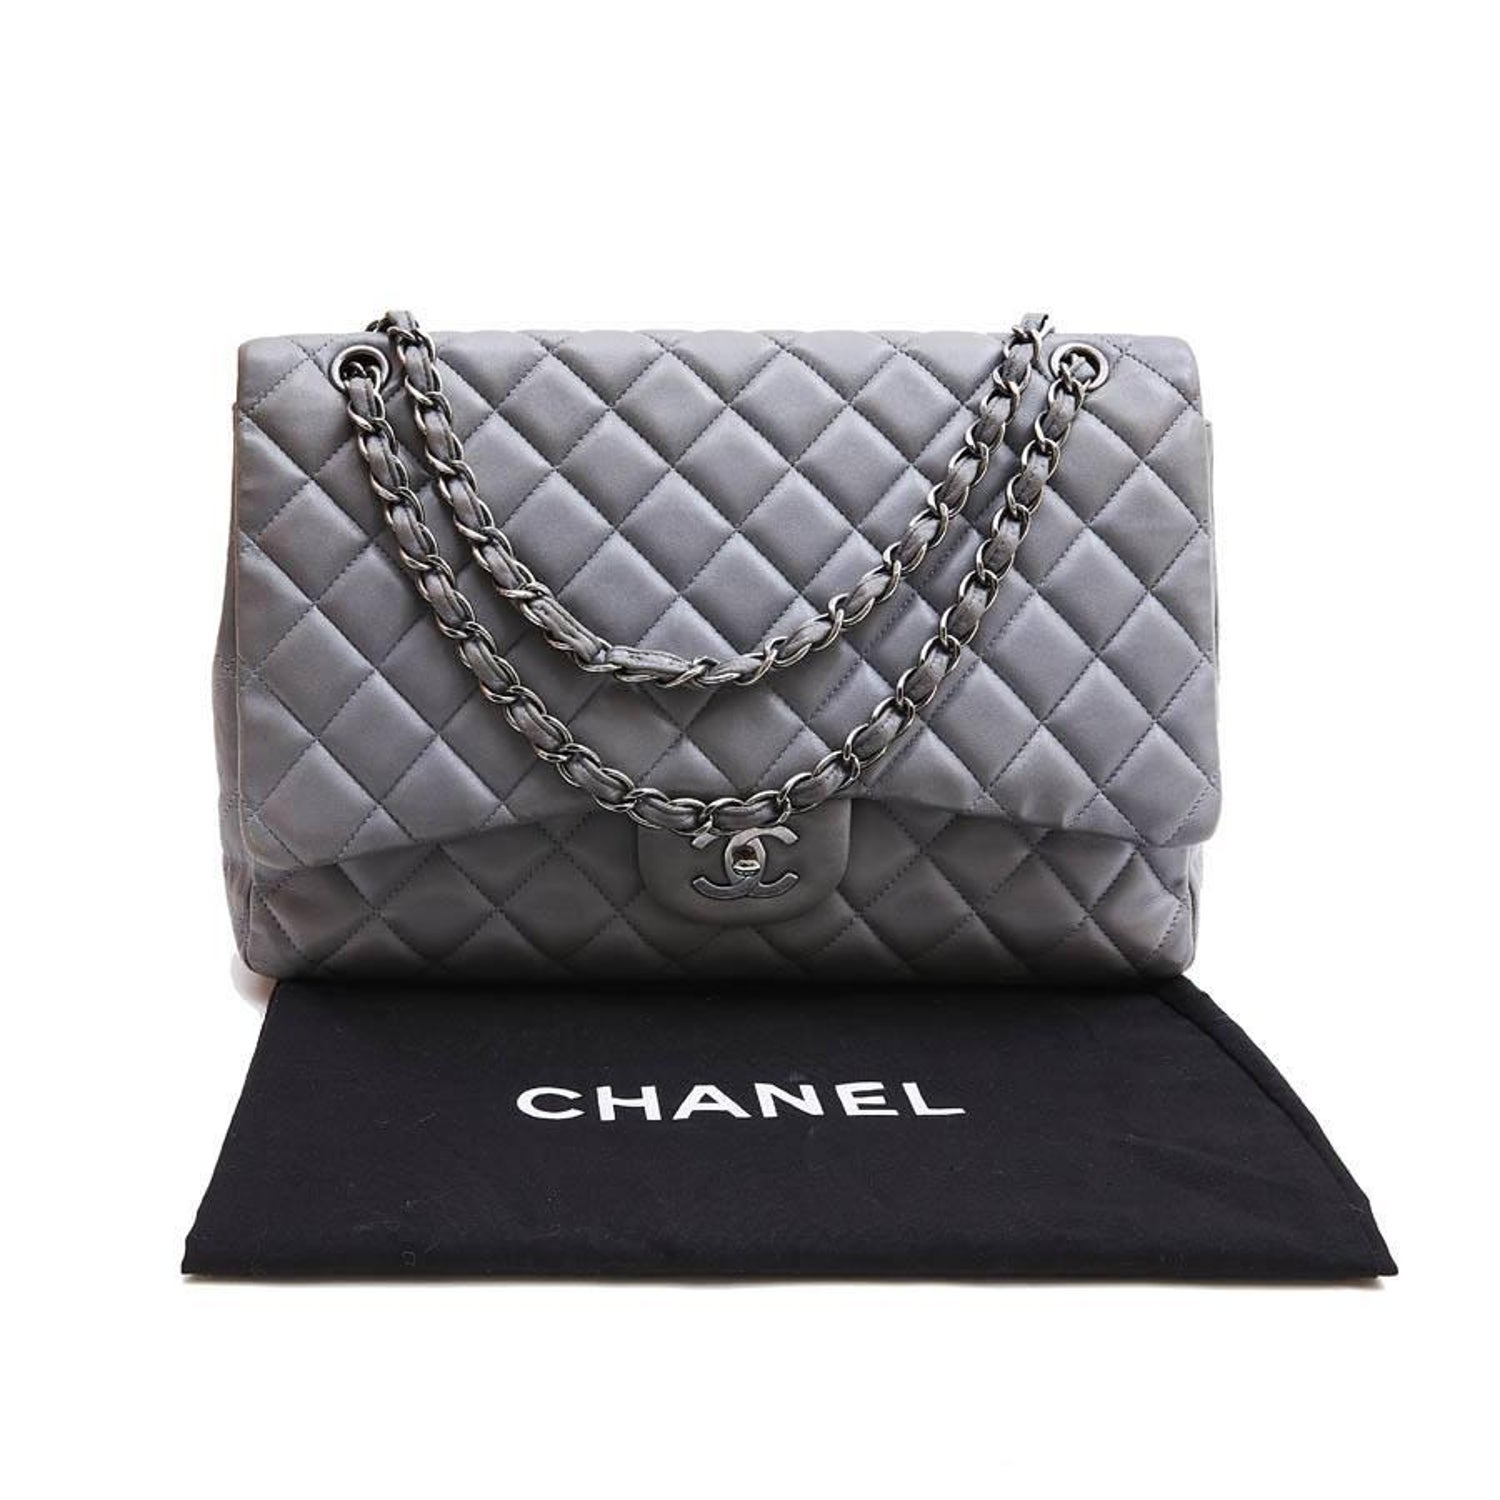 f699efd5d CHANEL Maxi Jumbo Bag in Pearl Gray Quilted Leather at 1stdibs